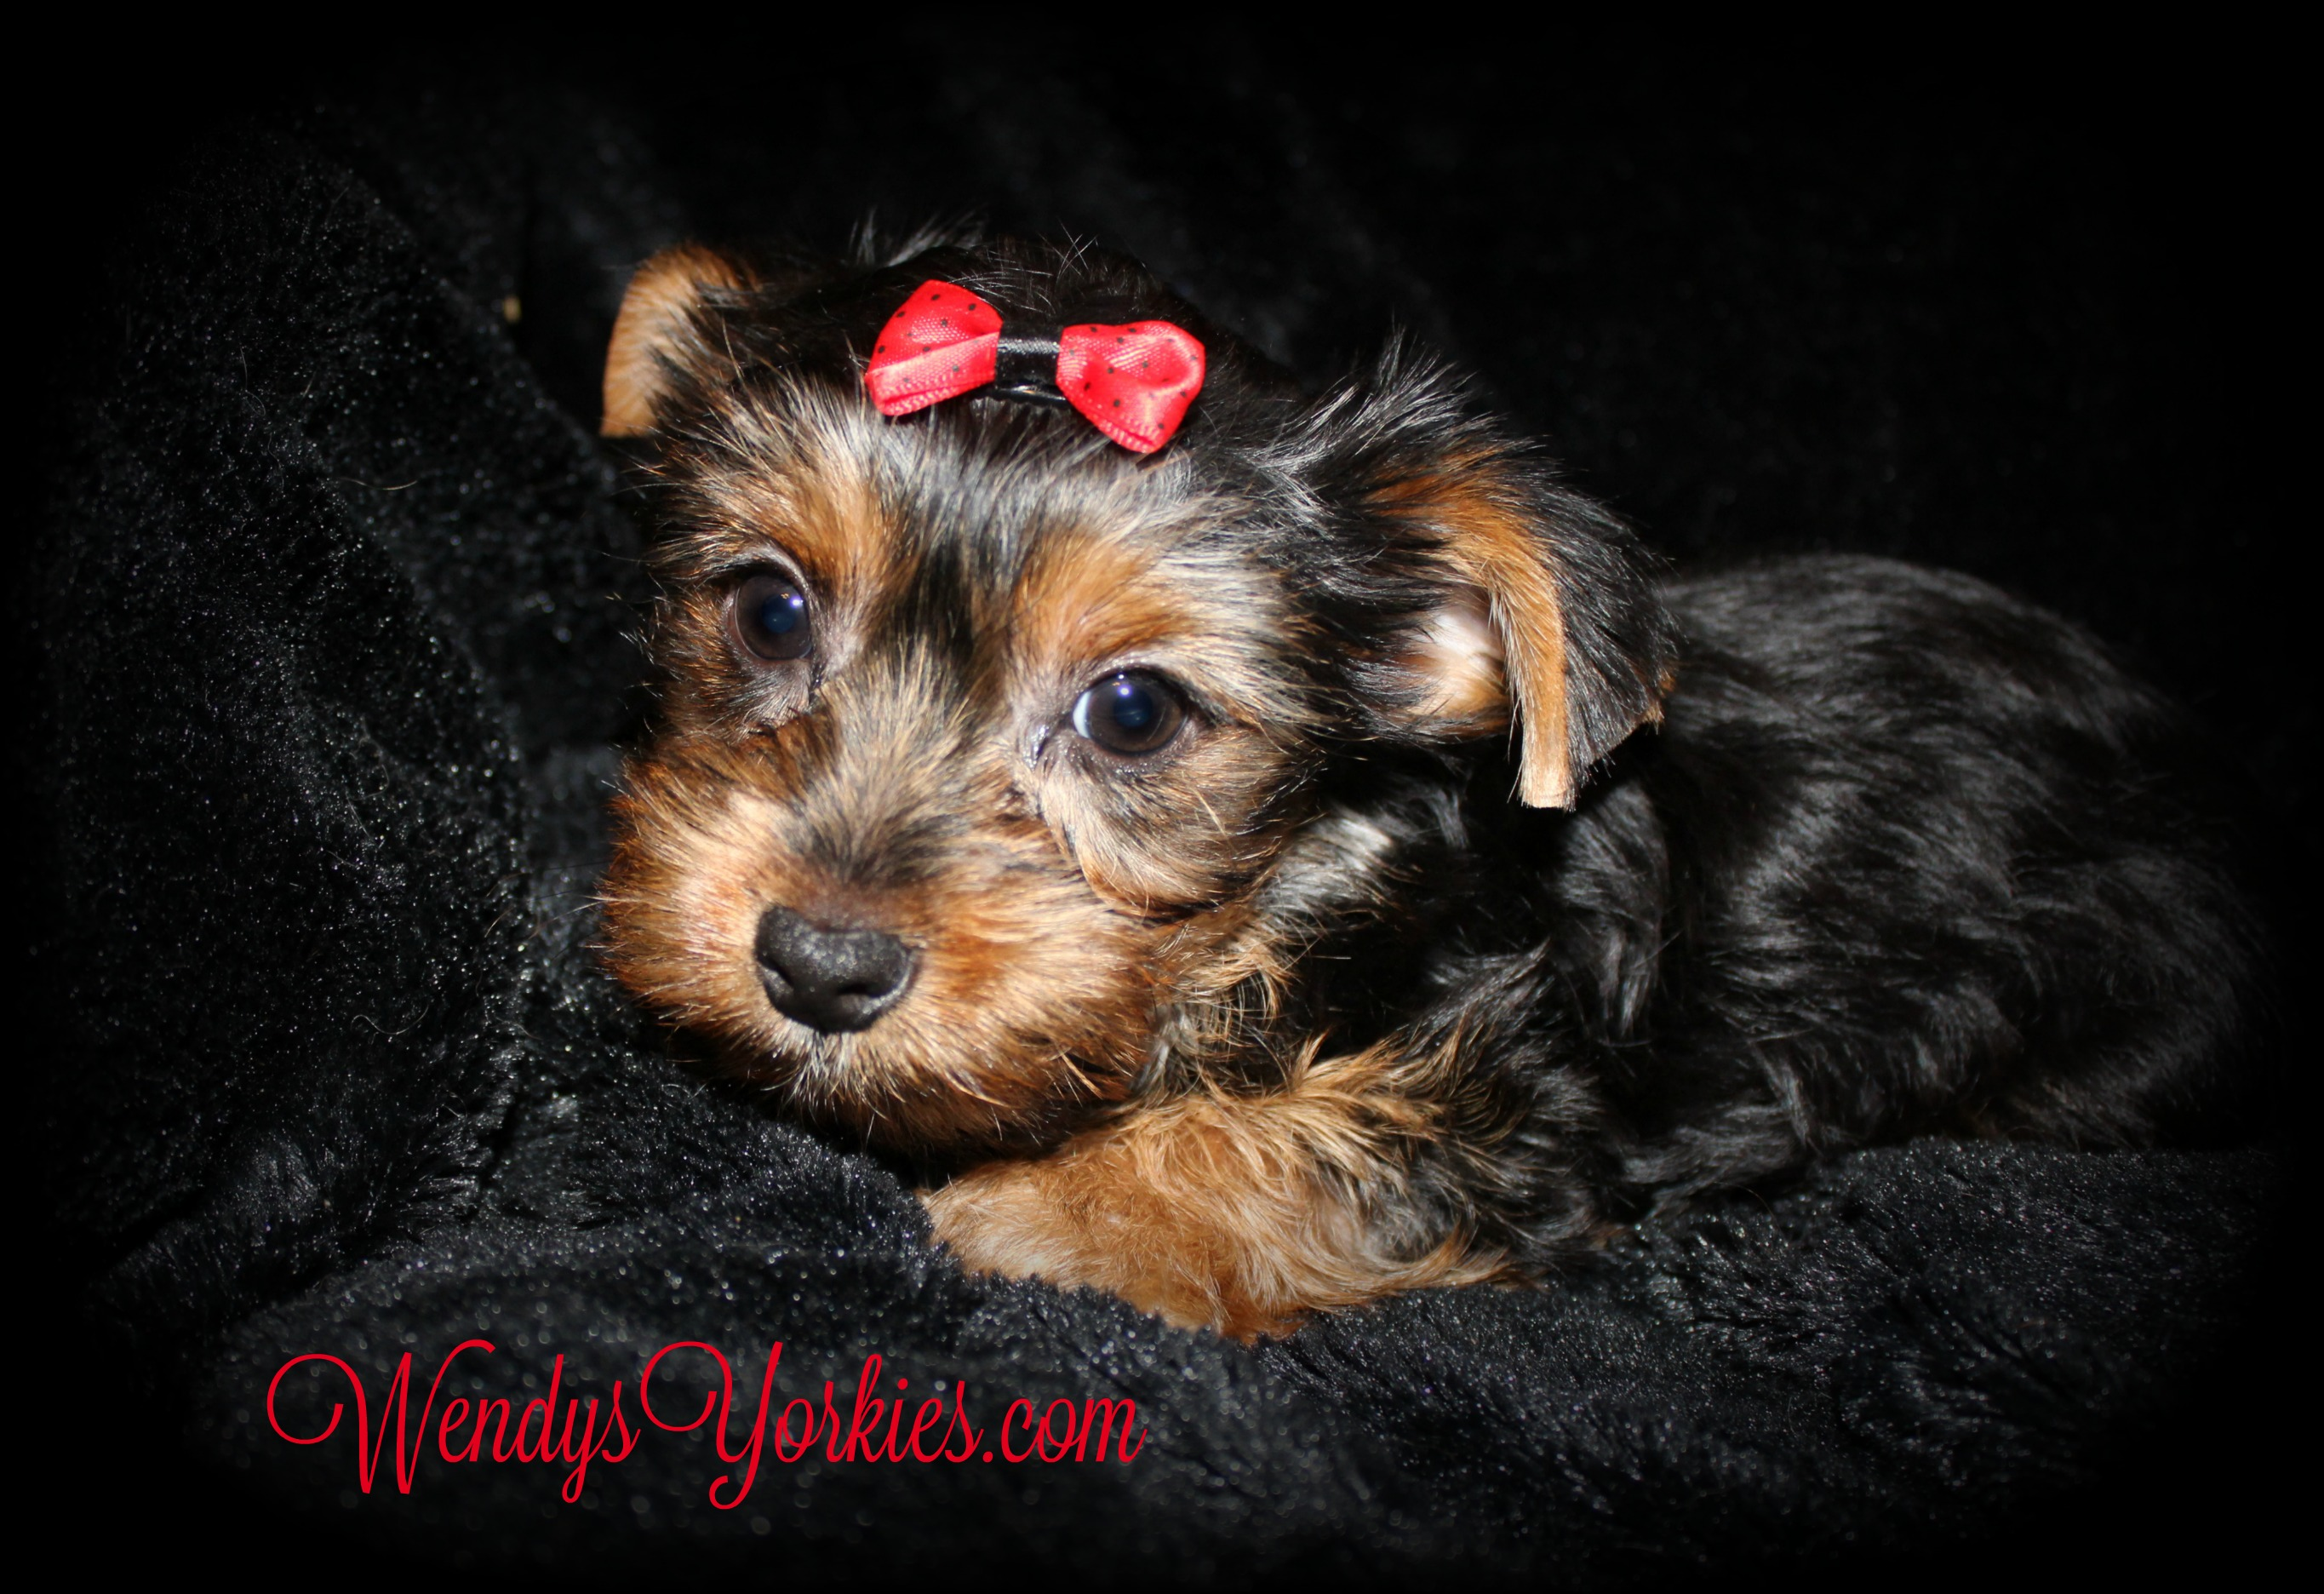 Male Yorkie puppy for sale, WendysYorkies.com, Anna m2